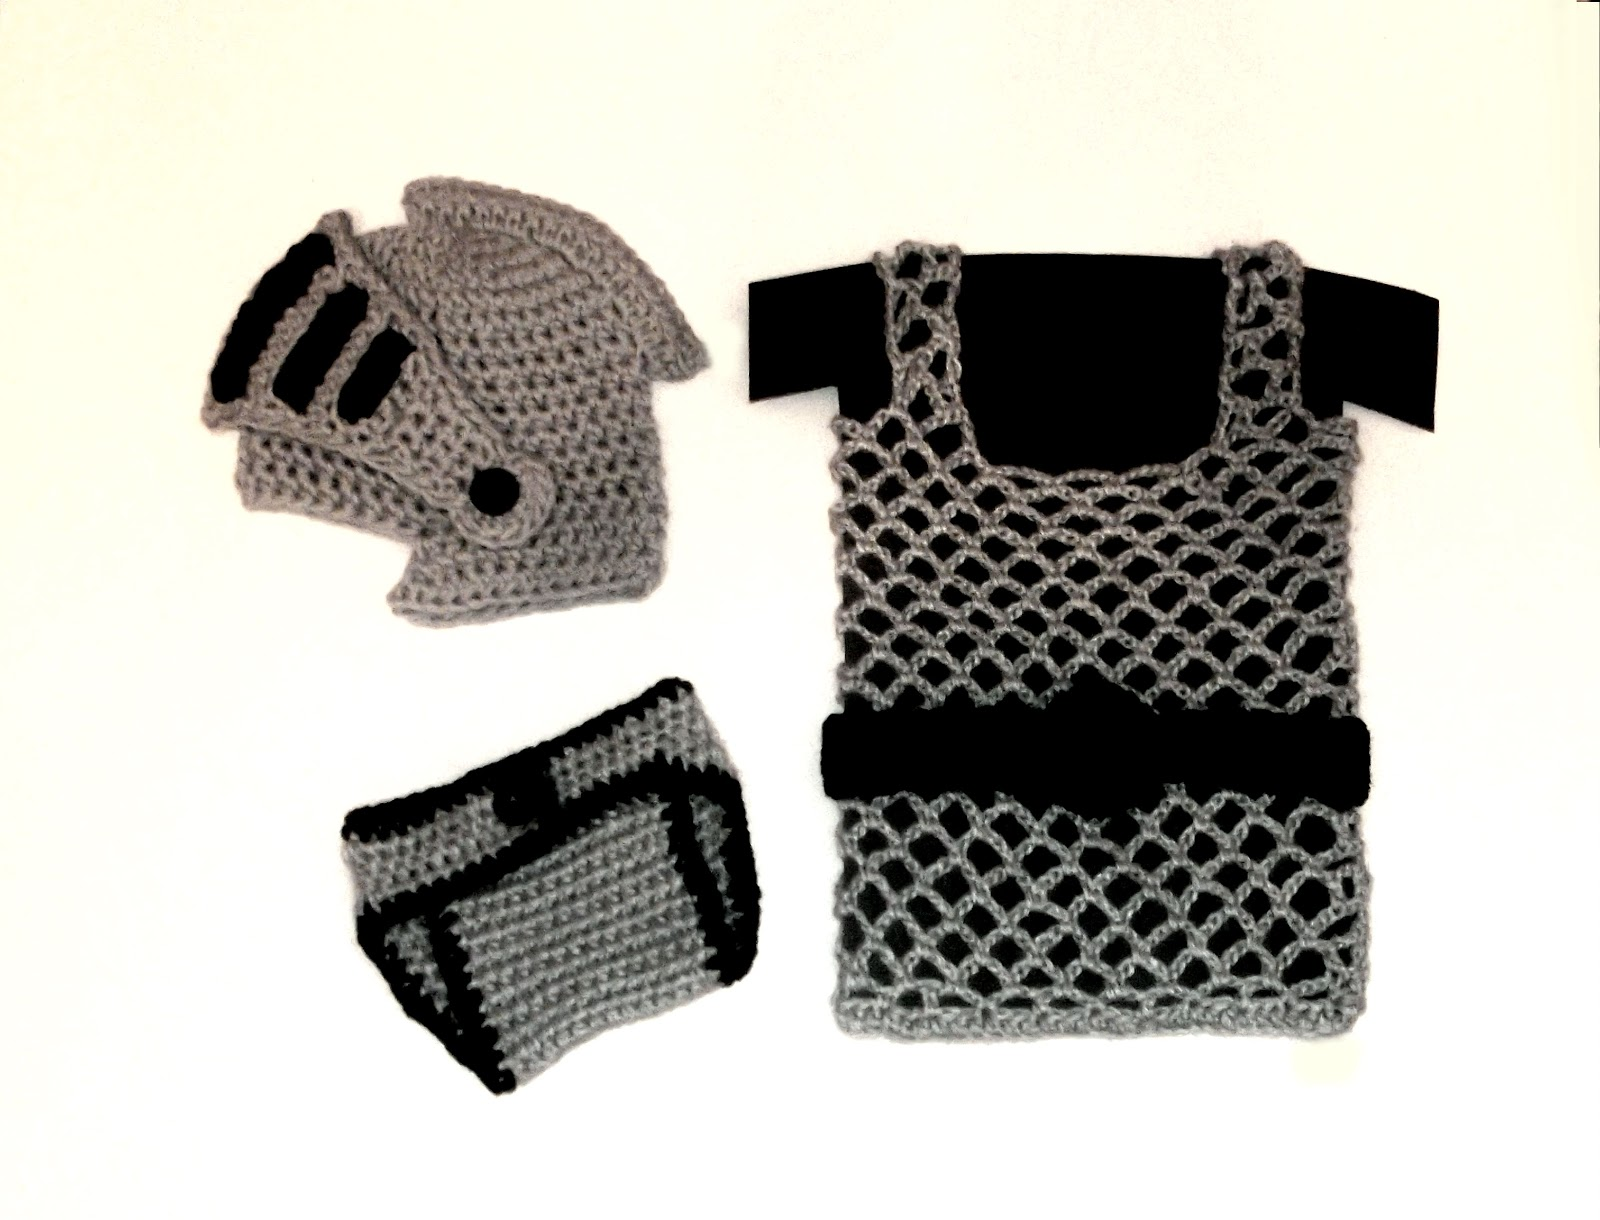 Cute designs knight helmet diaper cover chainmail vest knight helmet diaper cover chainmail vest crochet pattern bankloansurffo Image collections